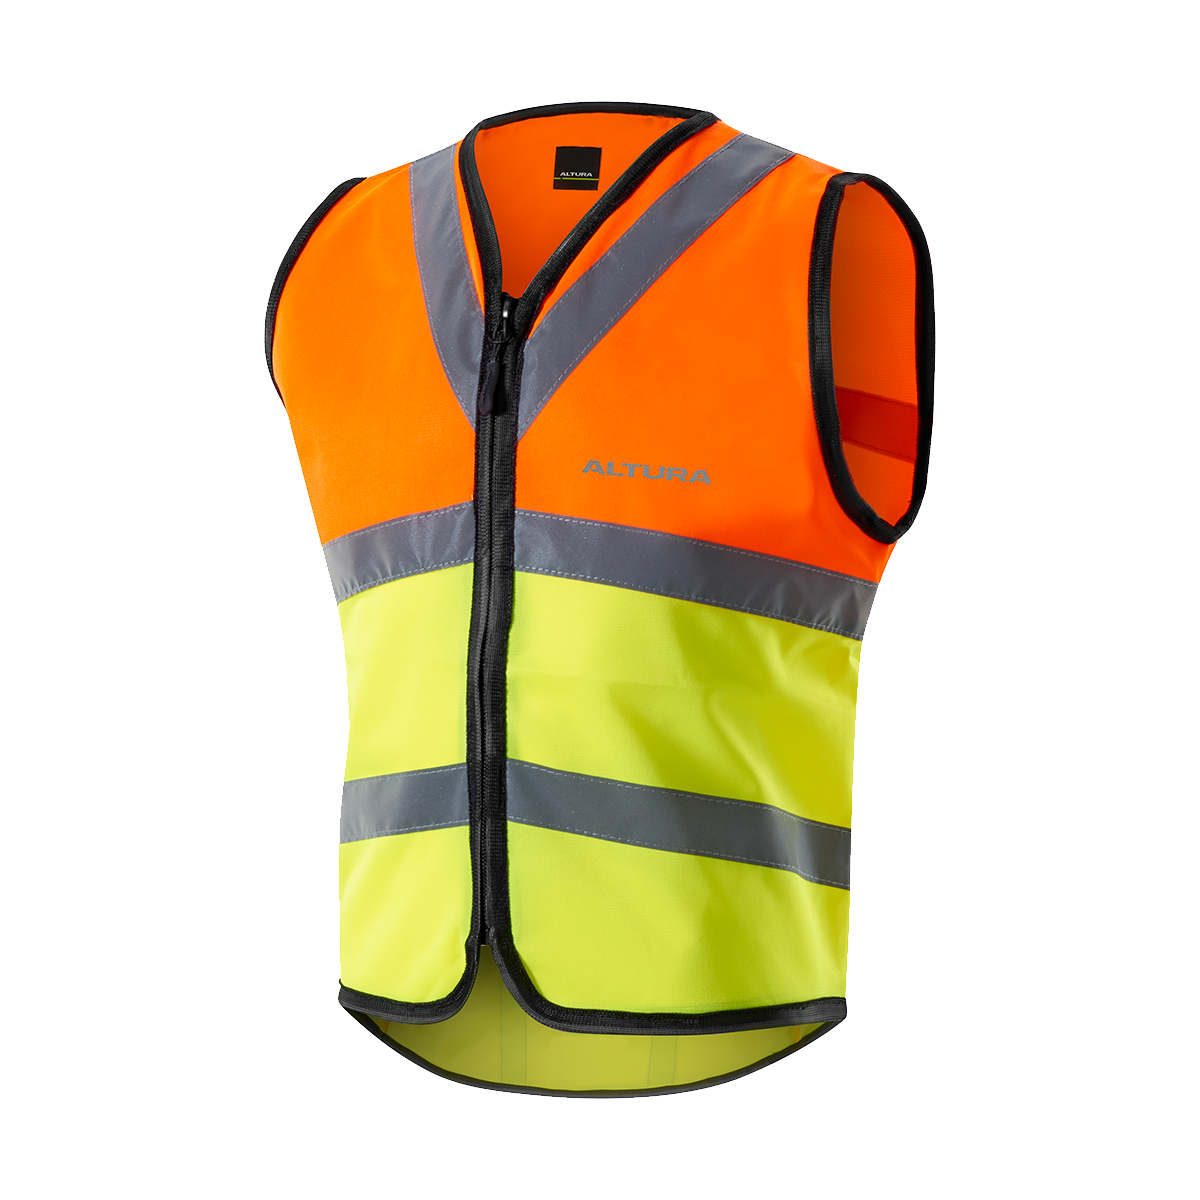 ALTURA CHILDREN'S NIGHTVISION SAFETY VEST 2016: HI VIZ YELLOW 10-12YRS